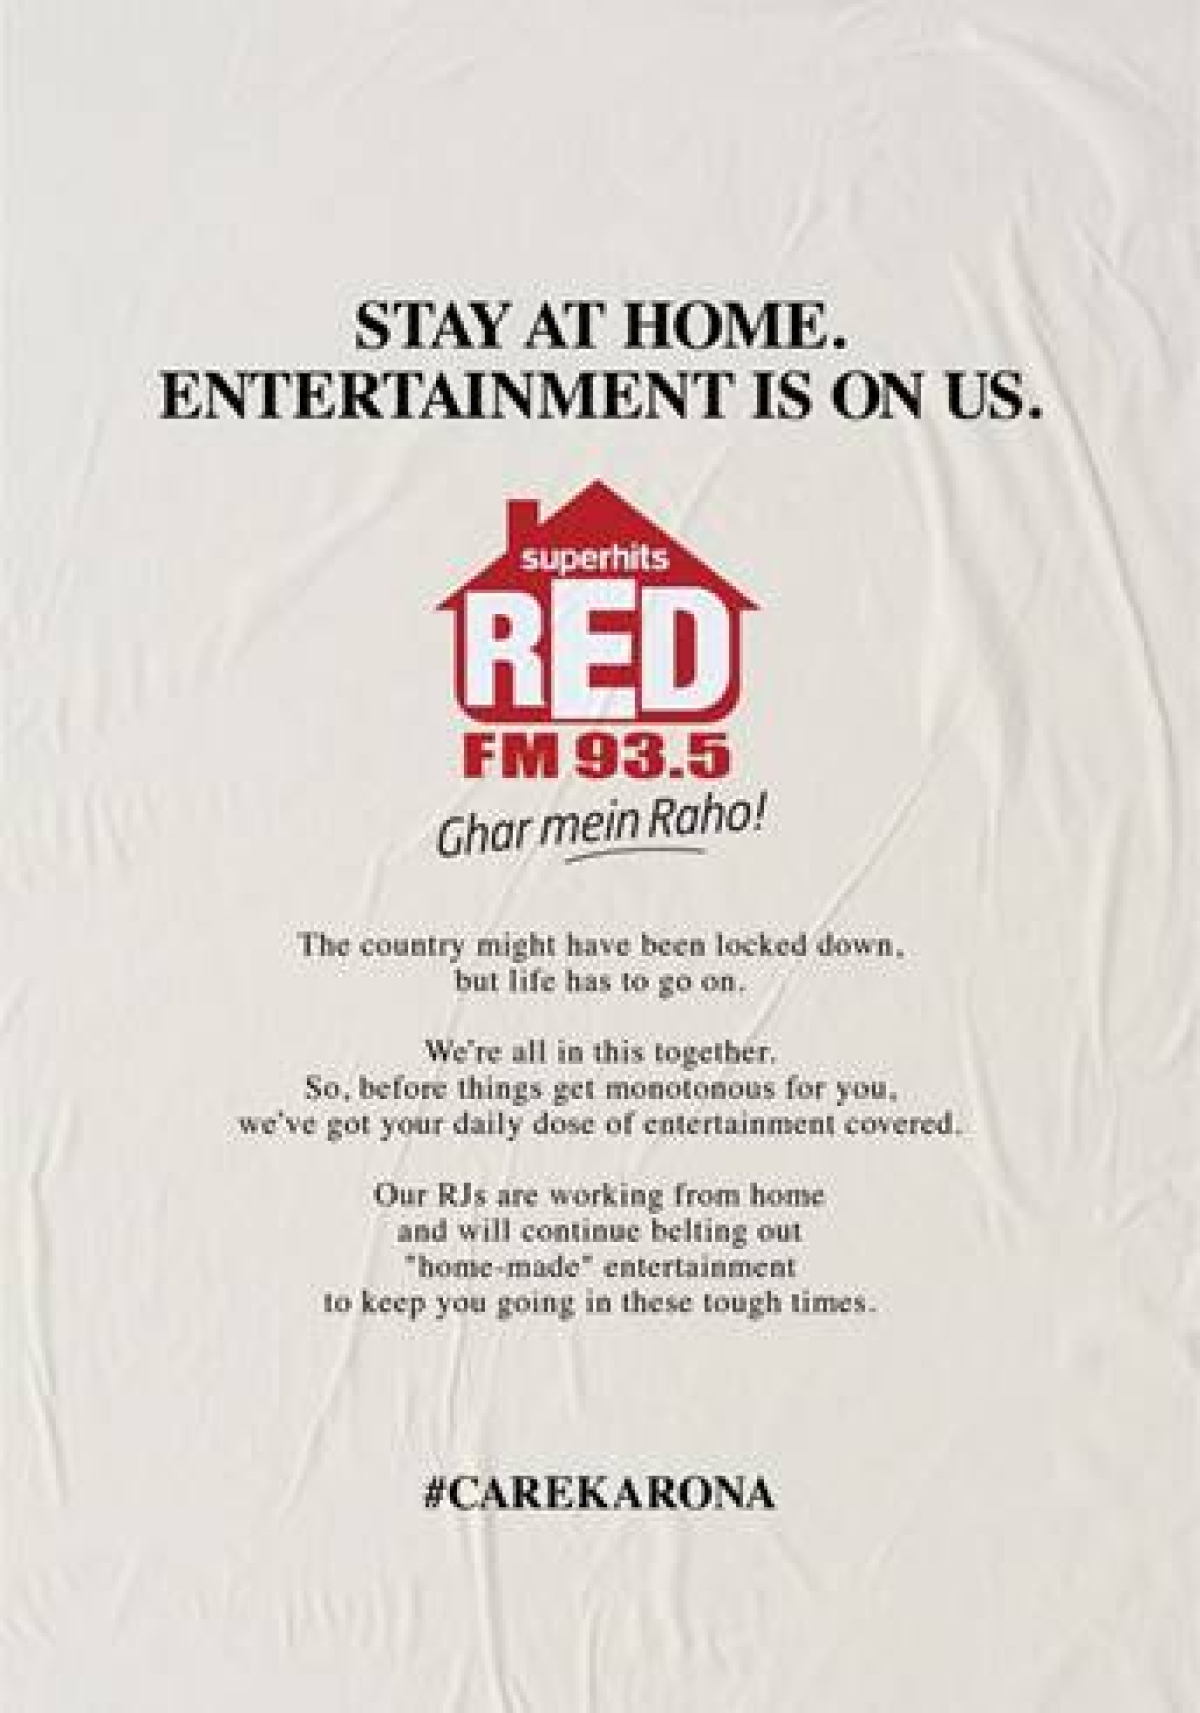 RED FM promises to supply unlimited entertainment